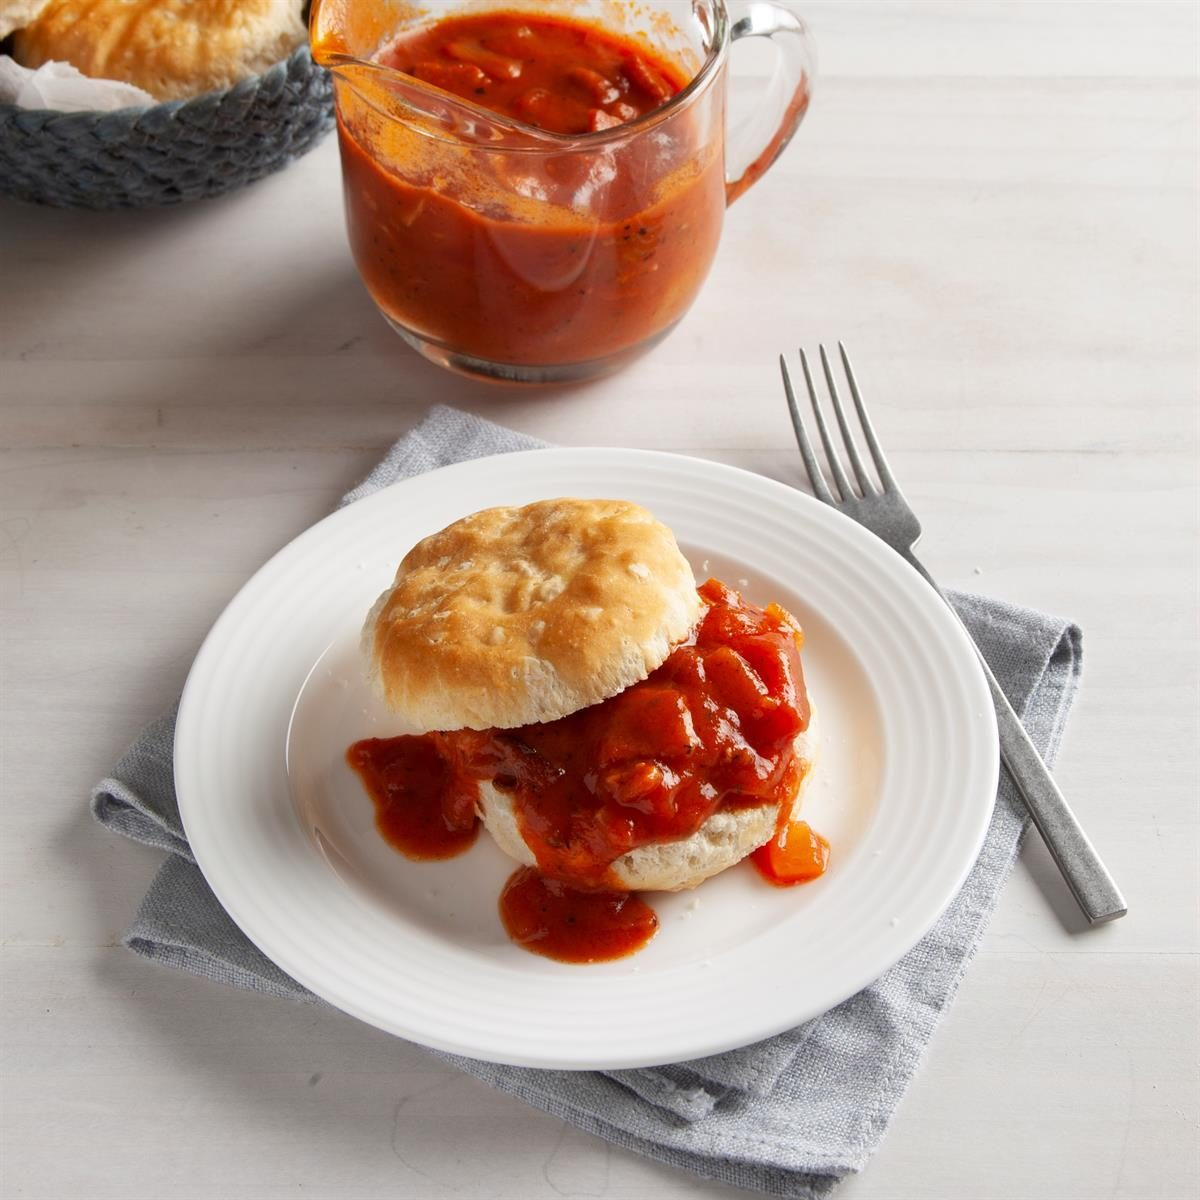 1930s: Tomato Gravy and Biscuits